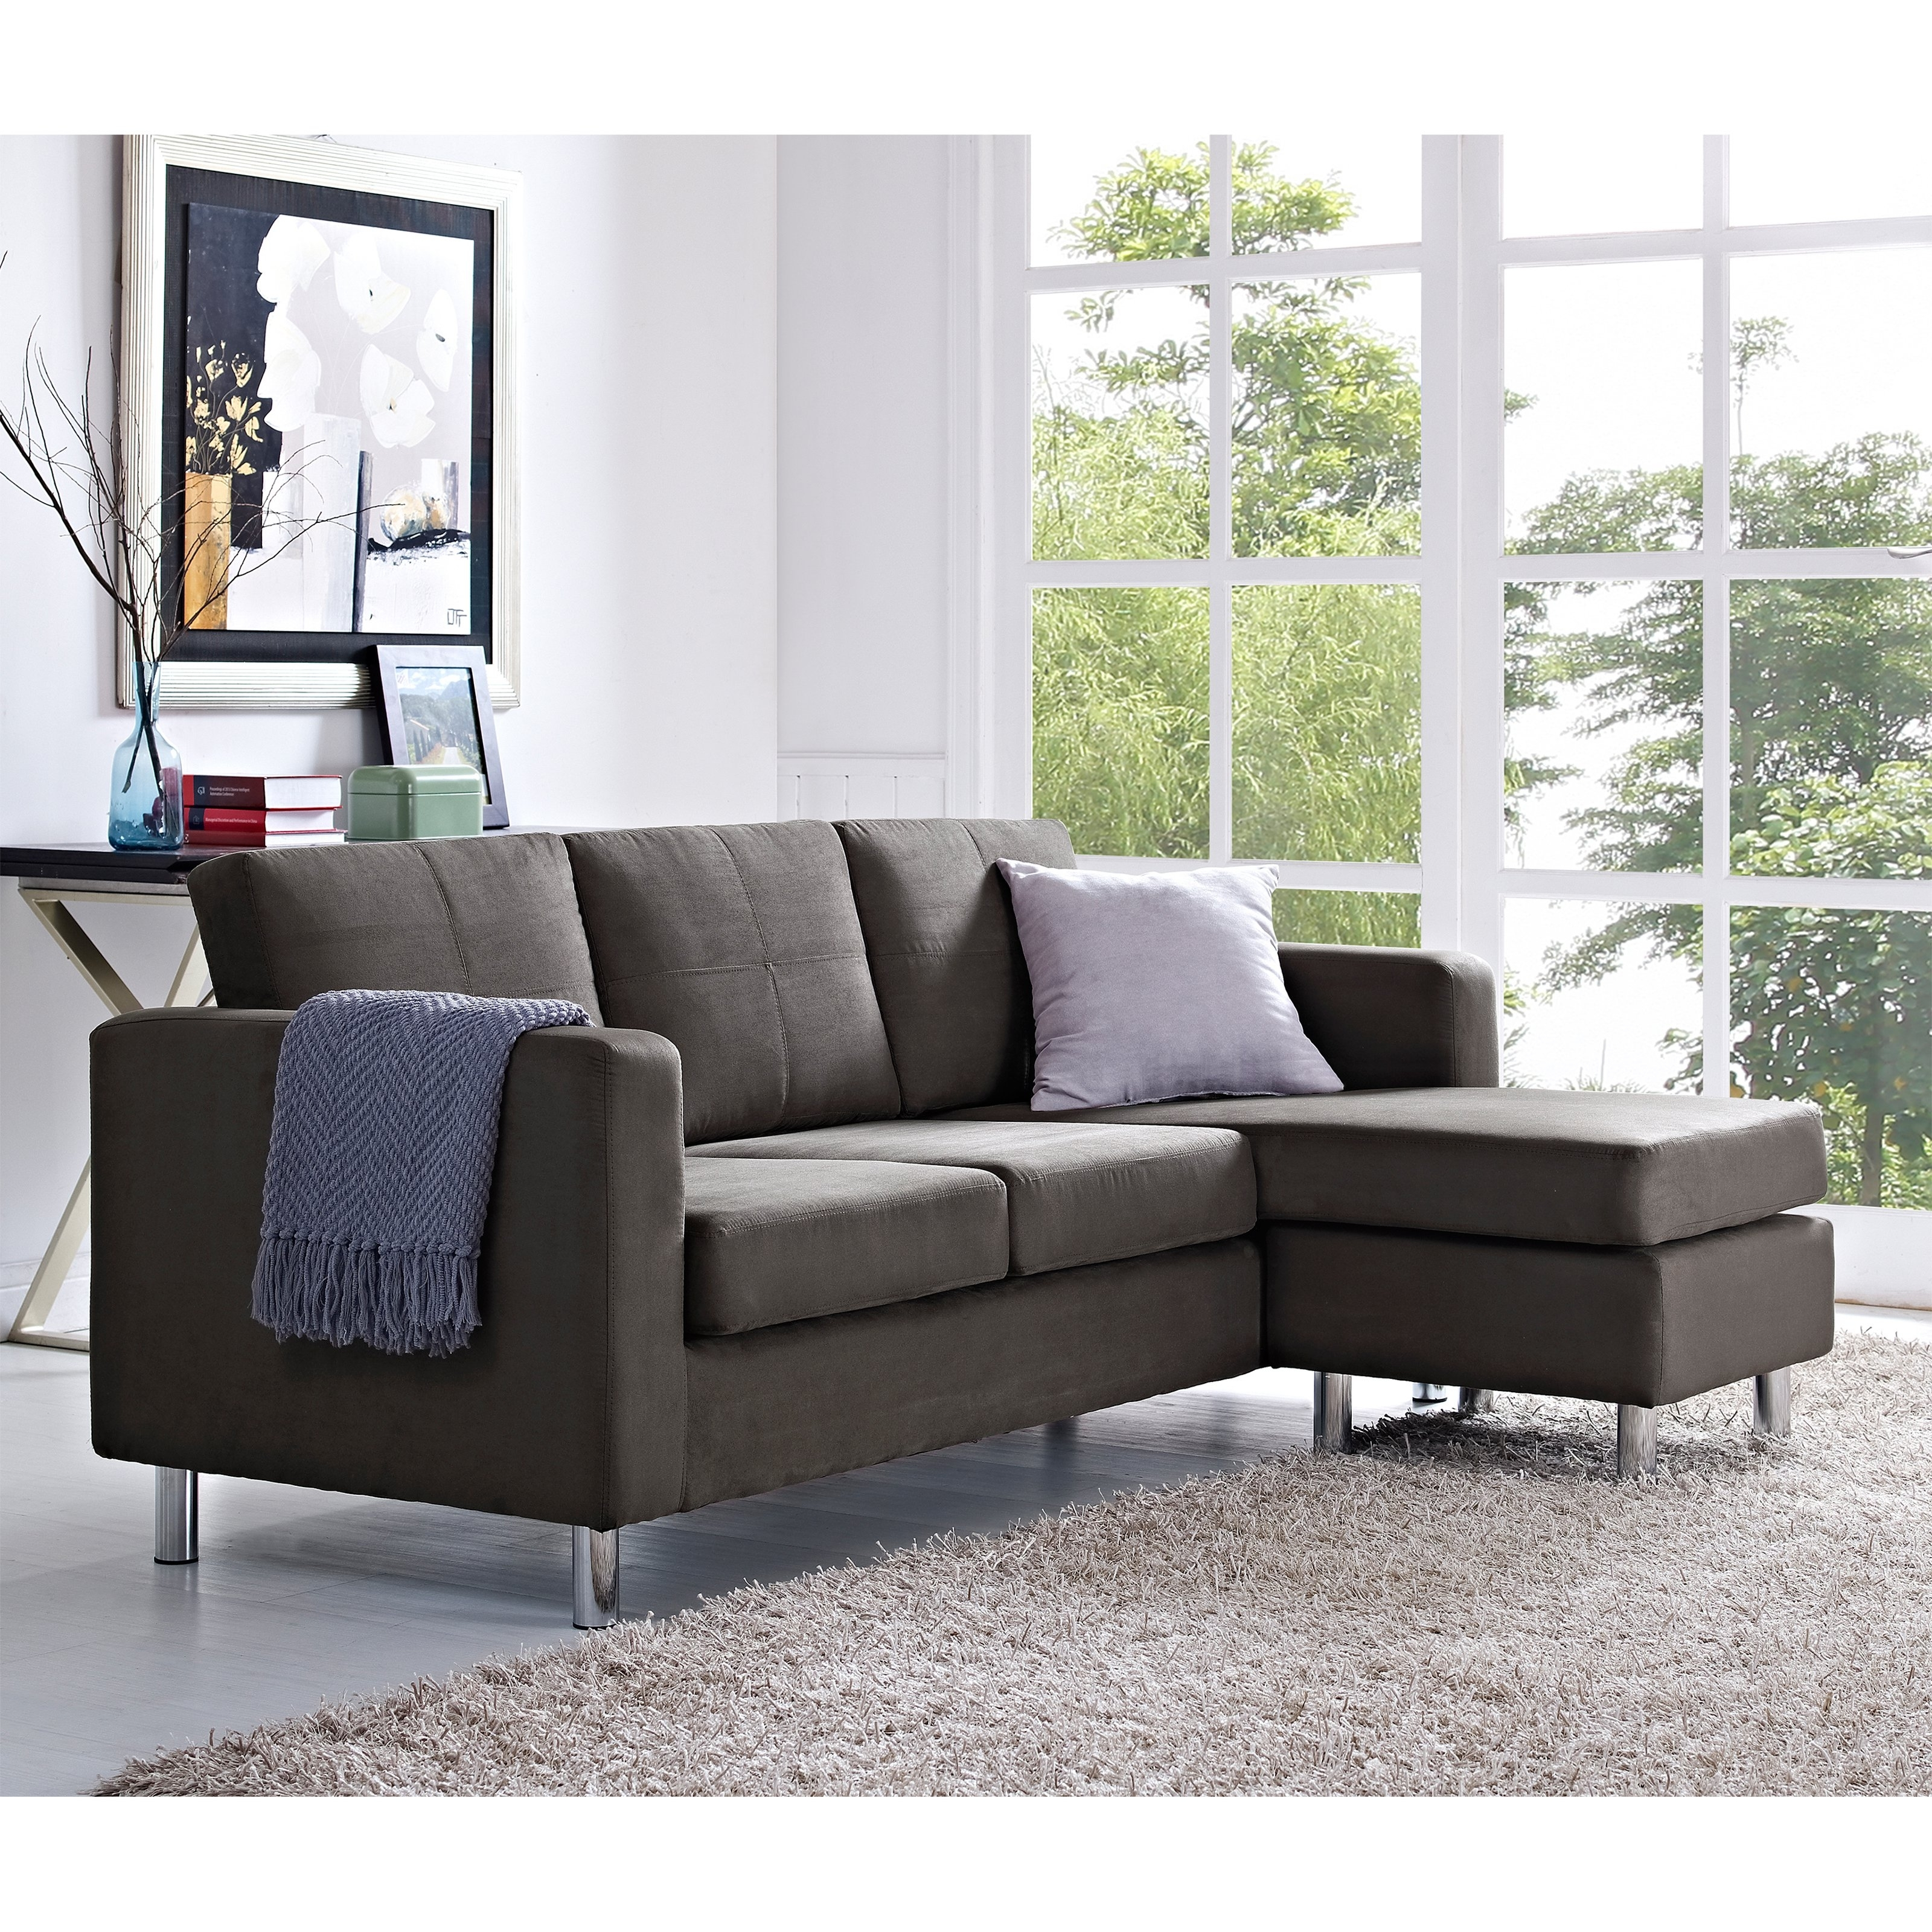 Tips On Buying And Placing A Sectional Sofa For Small Spaces Regarding Evansville In Sectional Sofas (View 5 of 10)